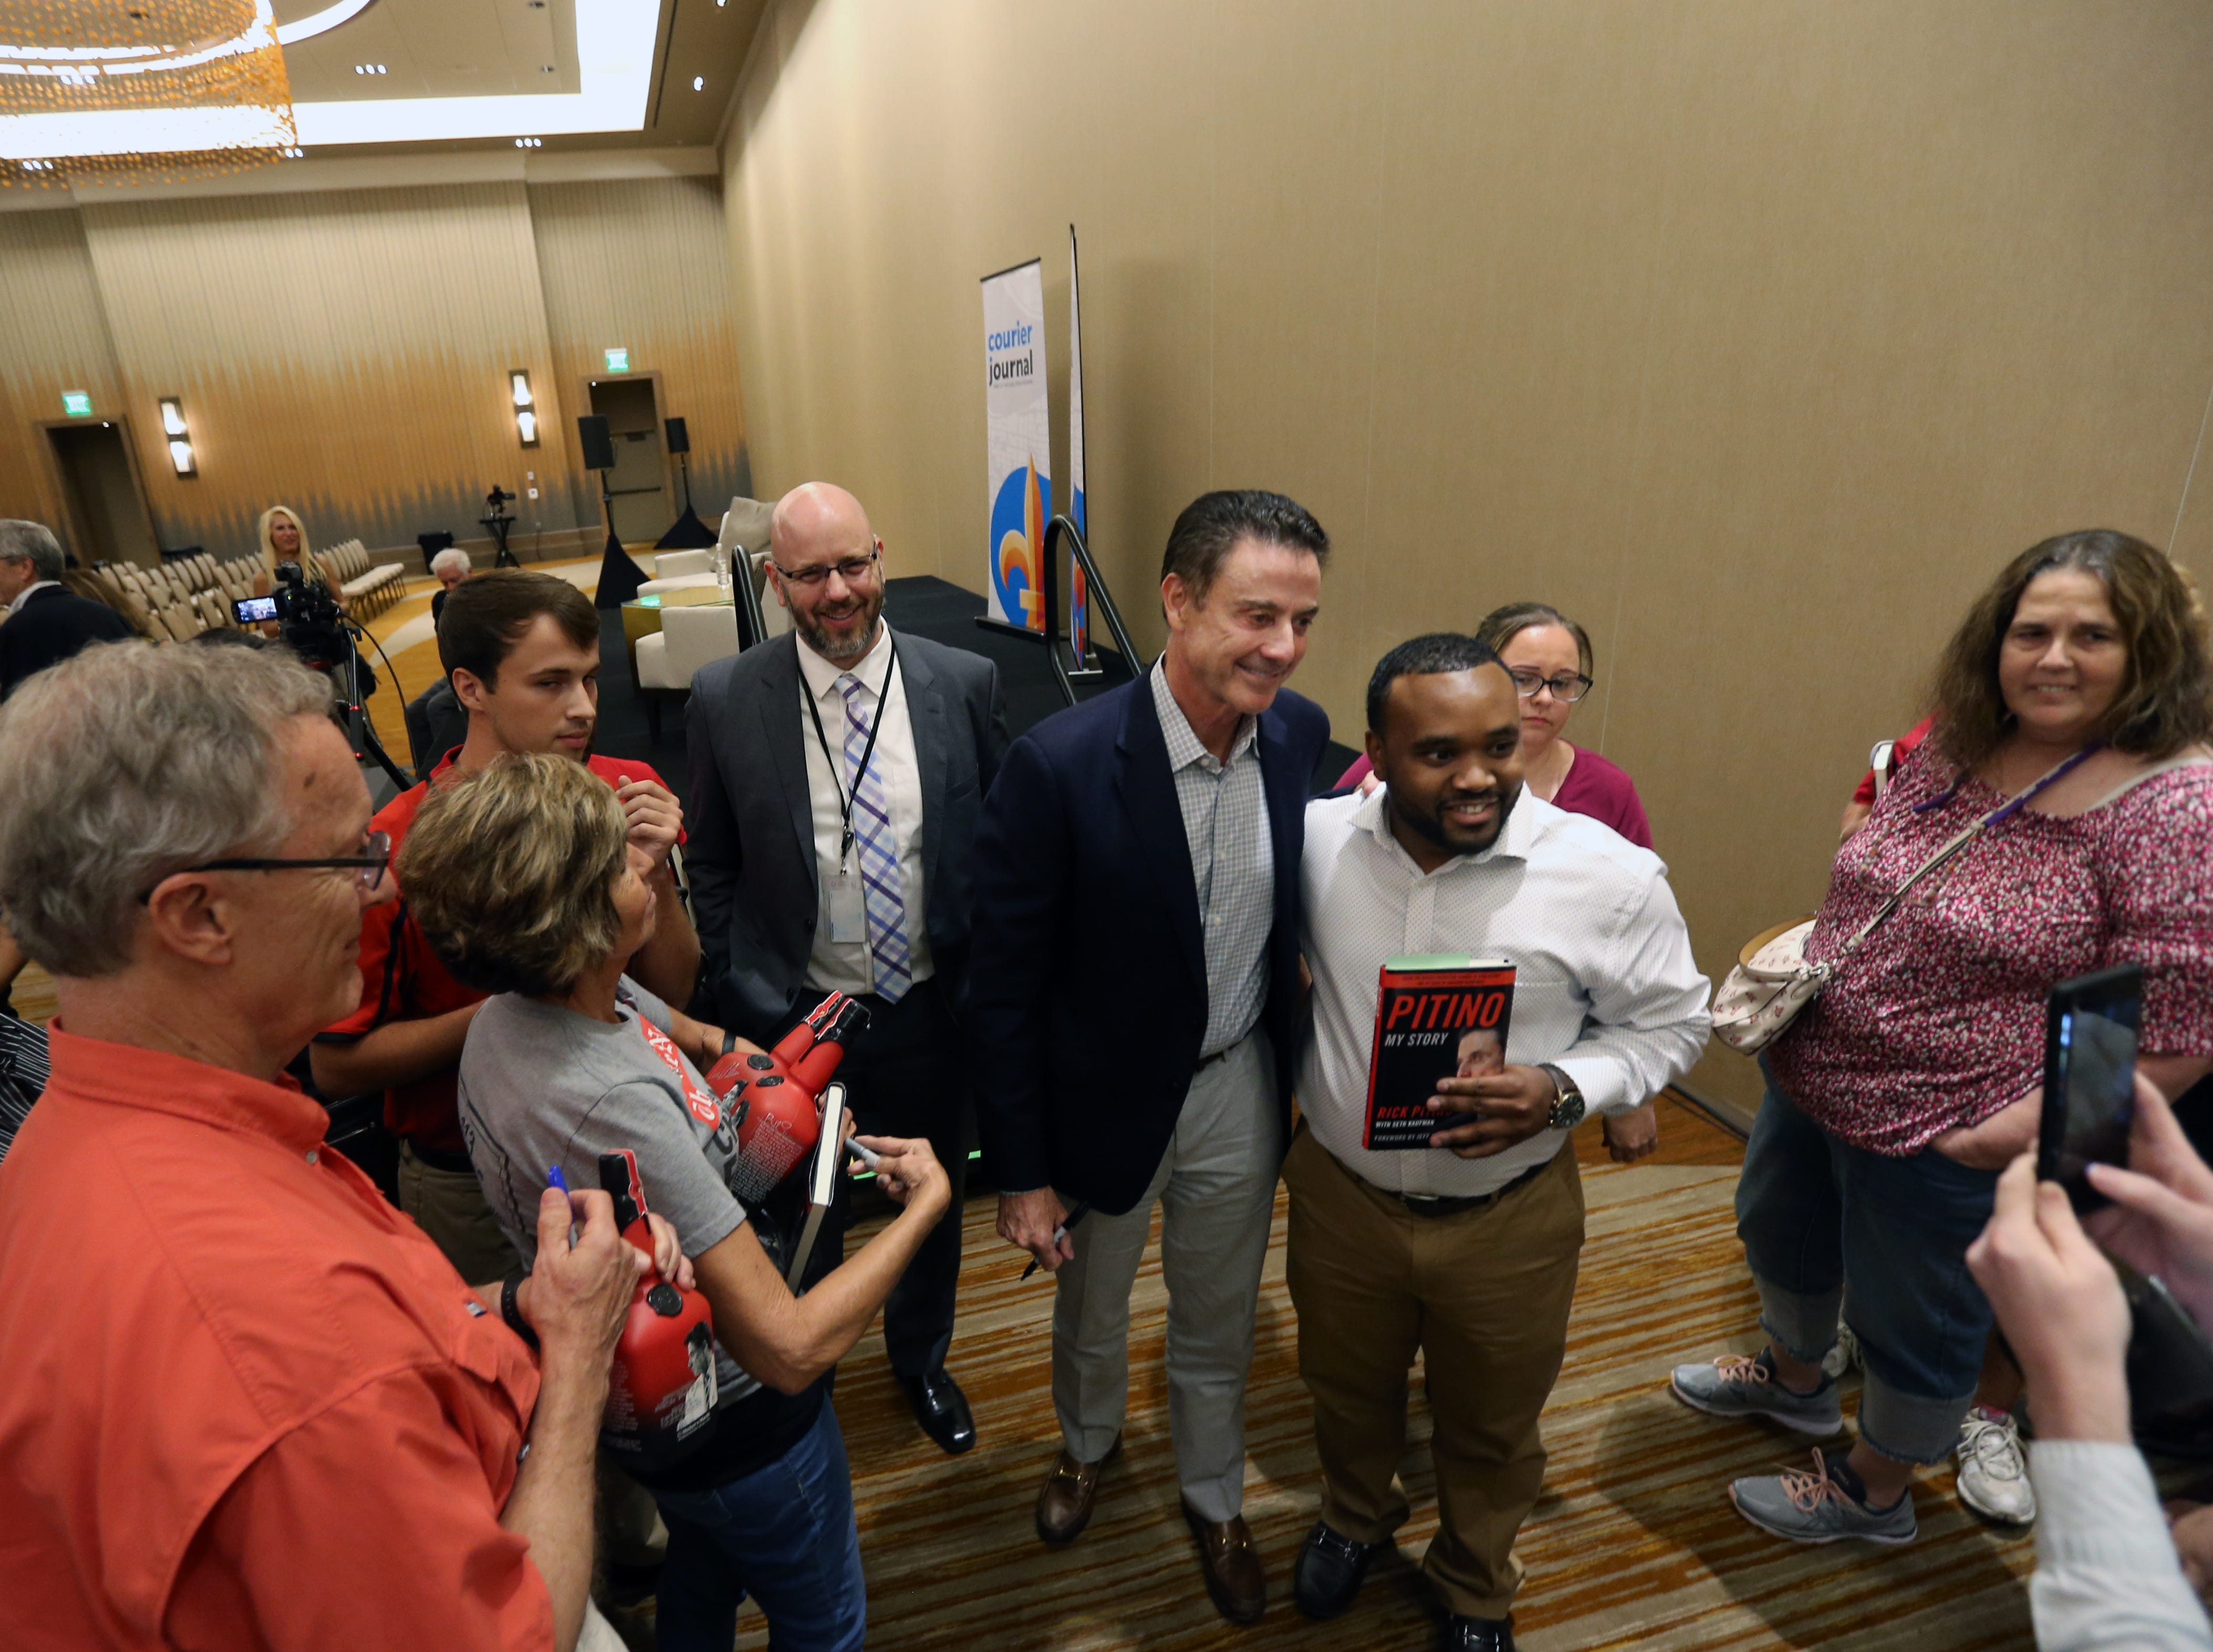 Rick Pitino stays after the livestream show with the Courier Journal to take pictures and sign autographs for the fans at the Omni Hotel on Friday in Louisville, Kentucky.Sept. 14, 2018